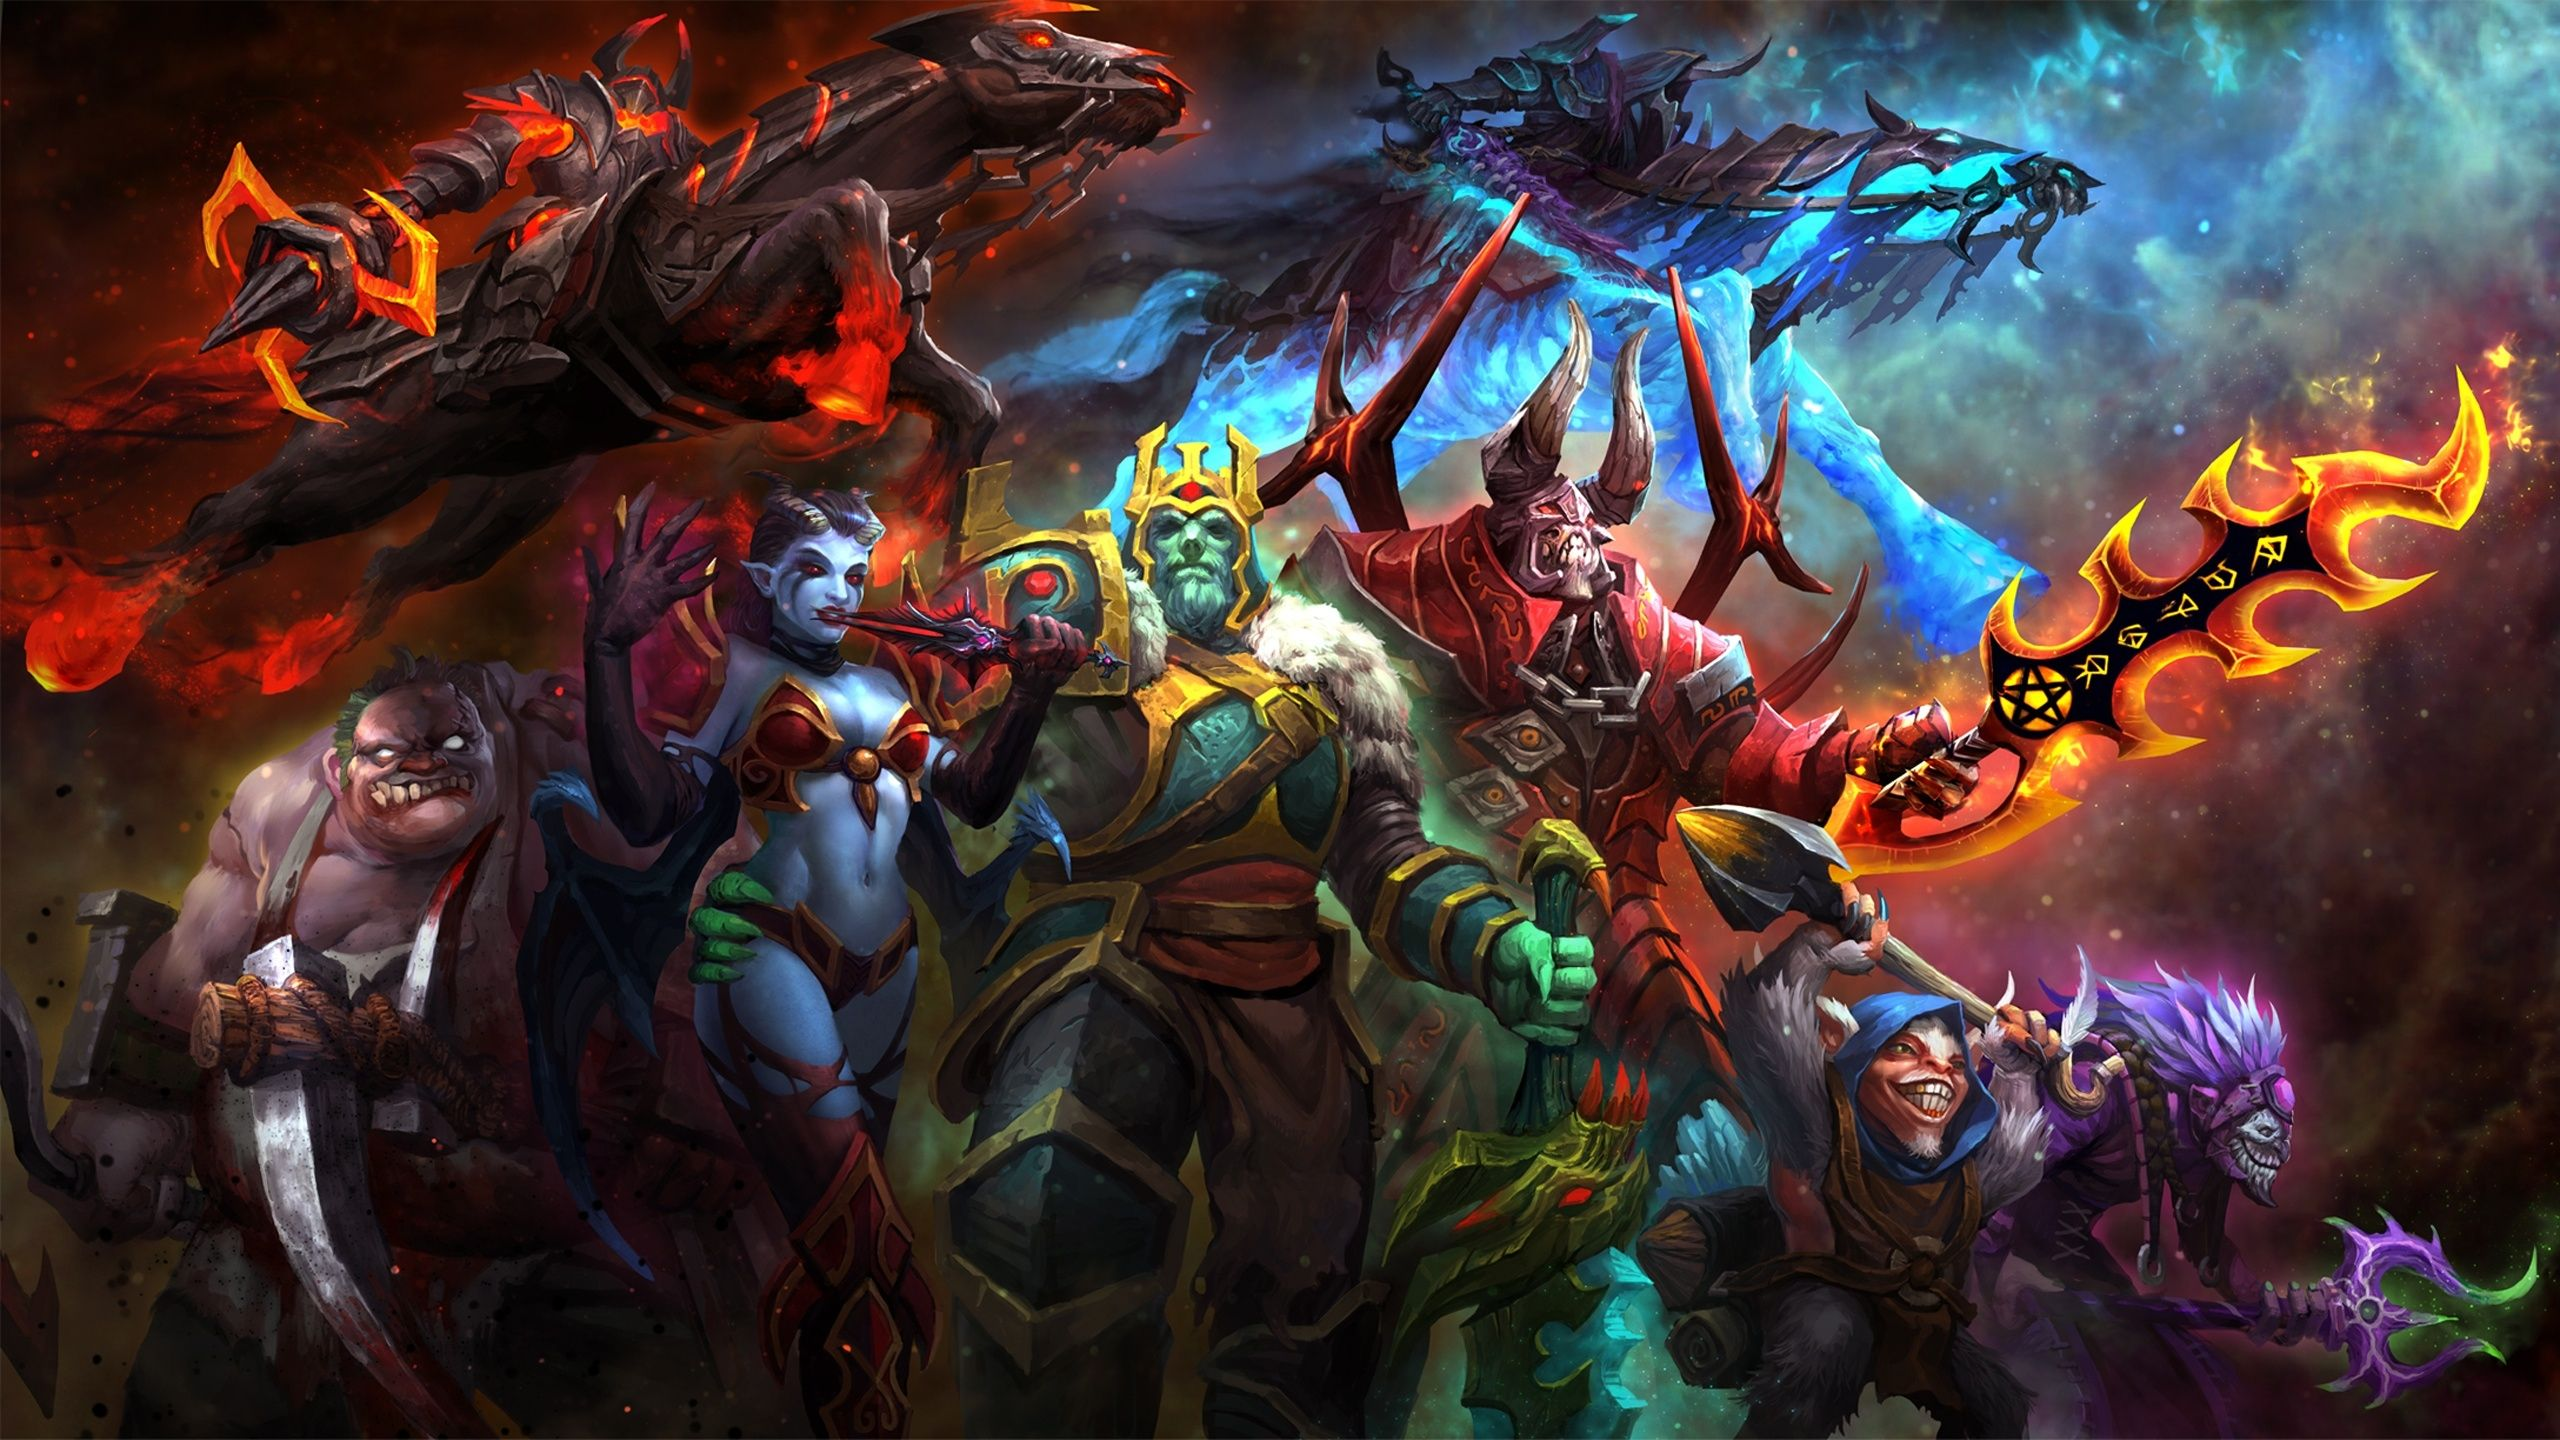 http dota wallpaper hd blogspot com dota wallpapers dota dota2